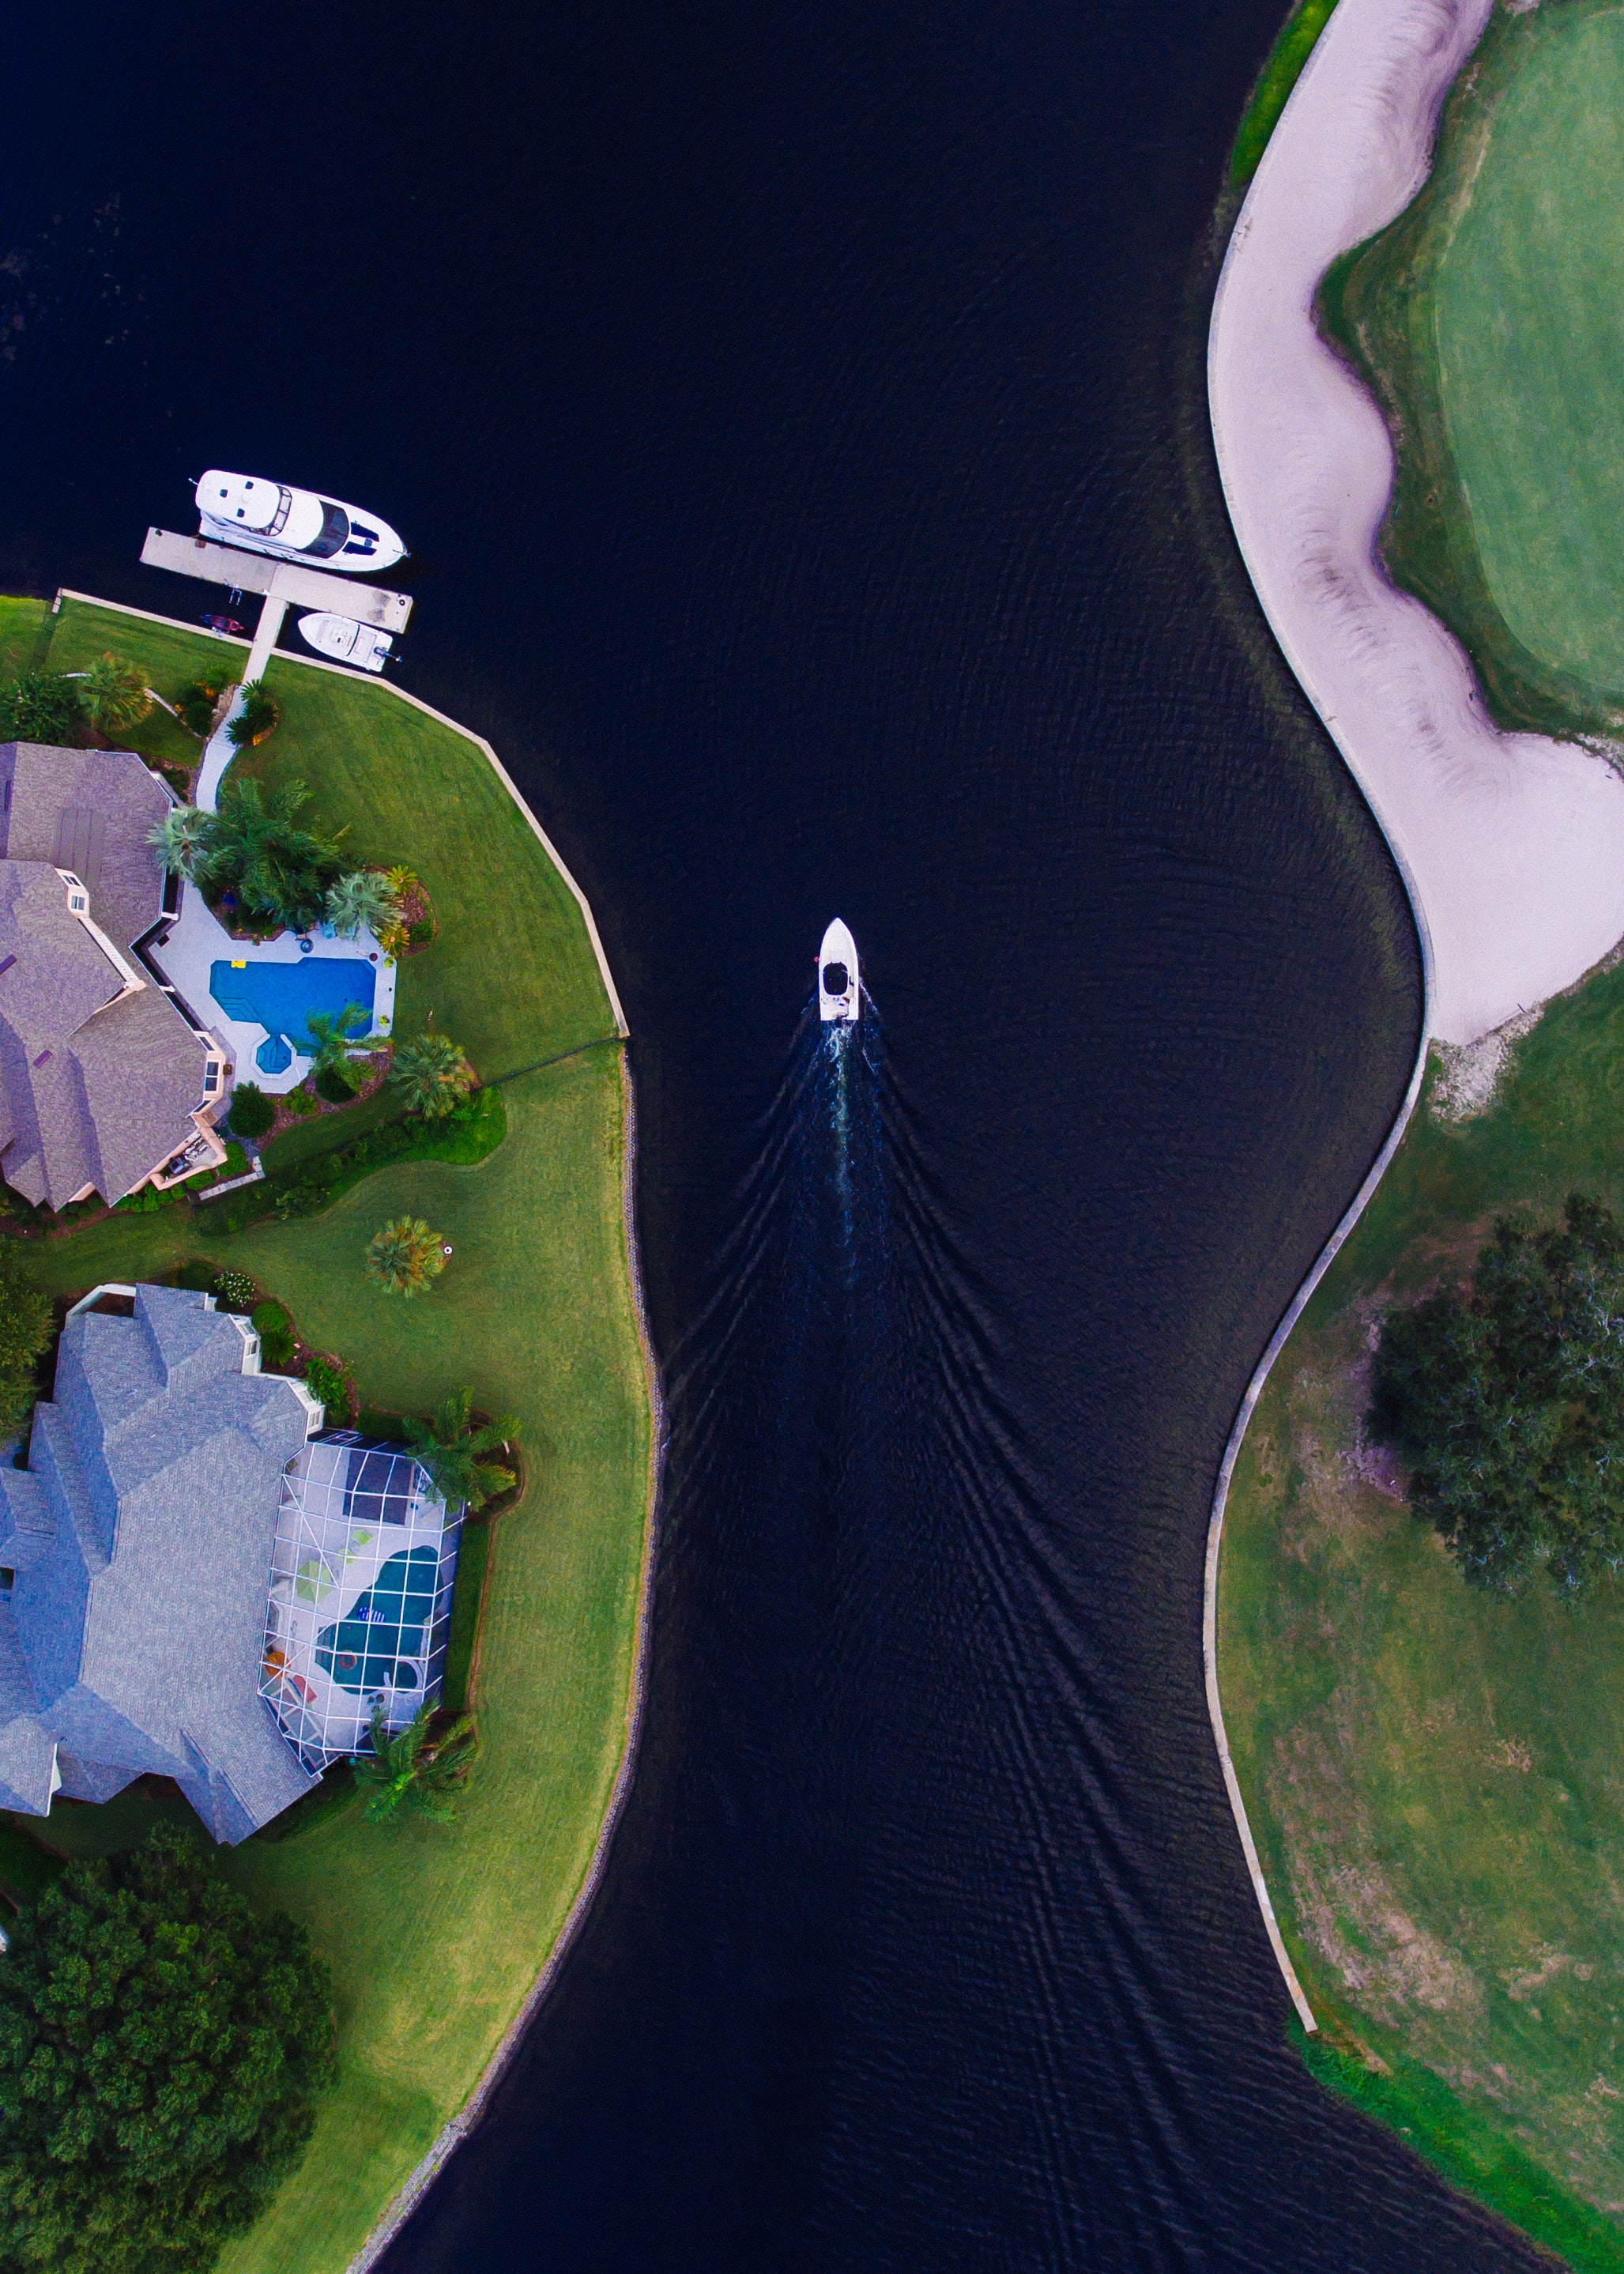 A drone view of a waterfront neighborhood of mansions and boats in Arlington, Jacksonville, Florida, United States